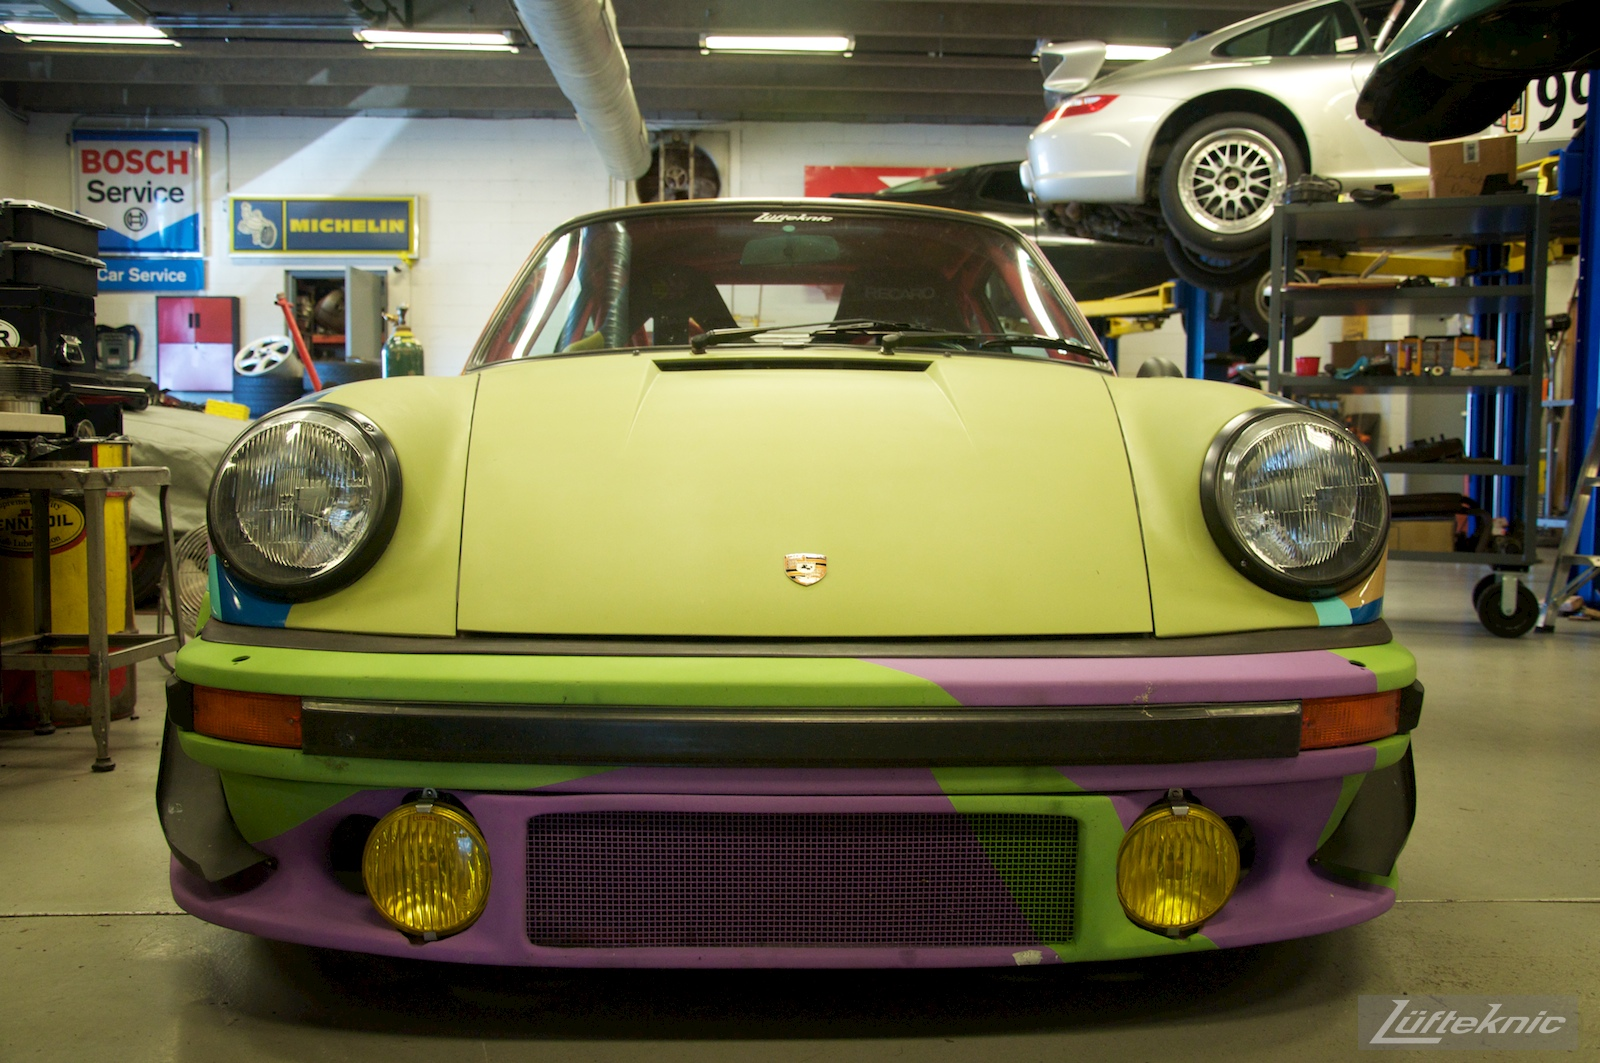 A front end picture of the Lüfteknic #projectstuka Porsche 930 Turbo with porsches being worked on in the background